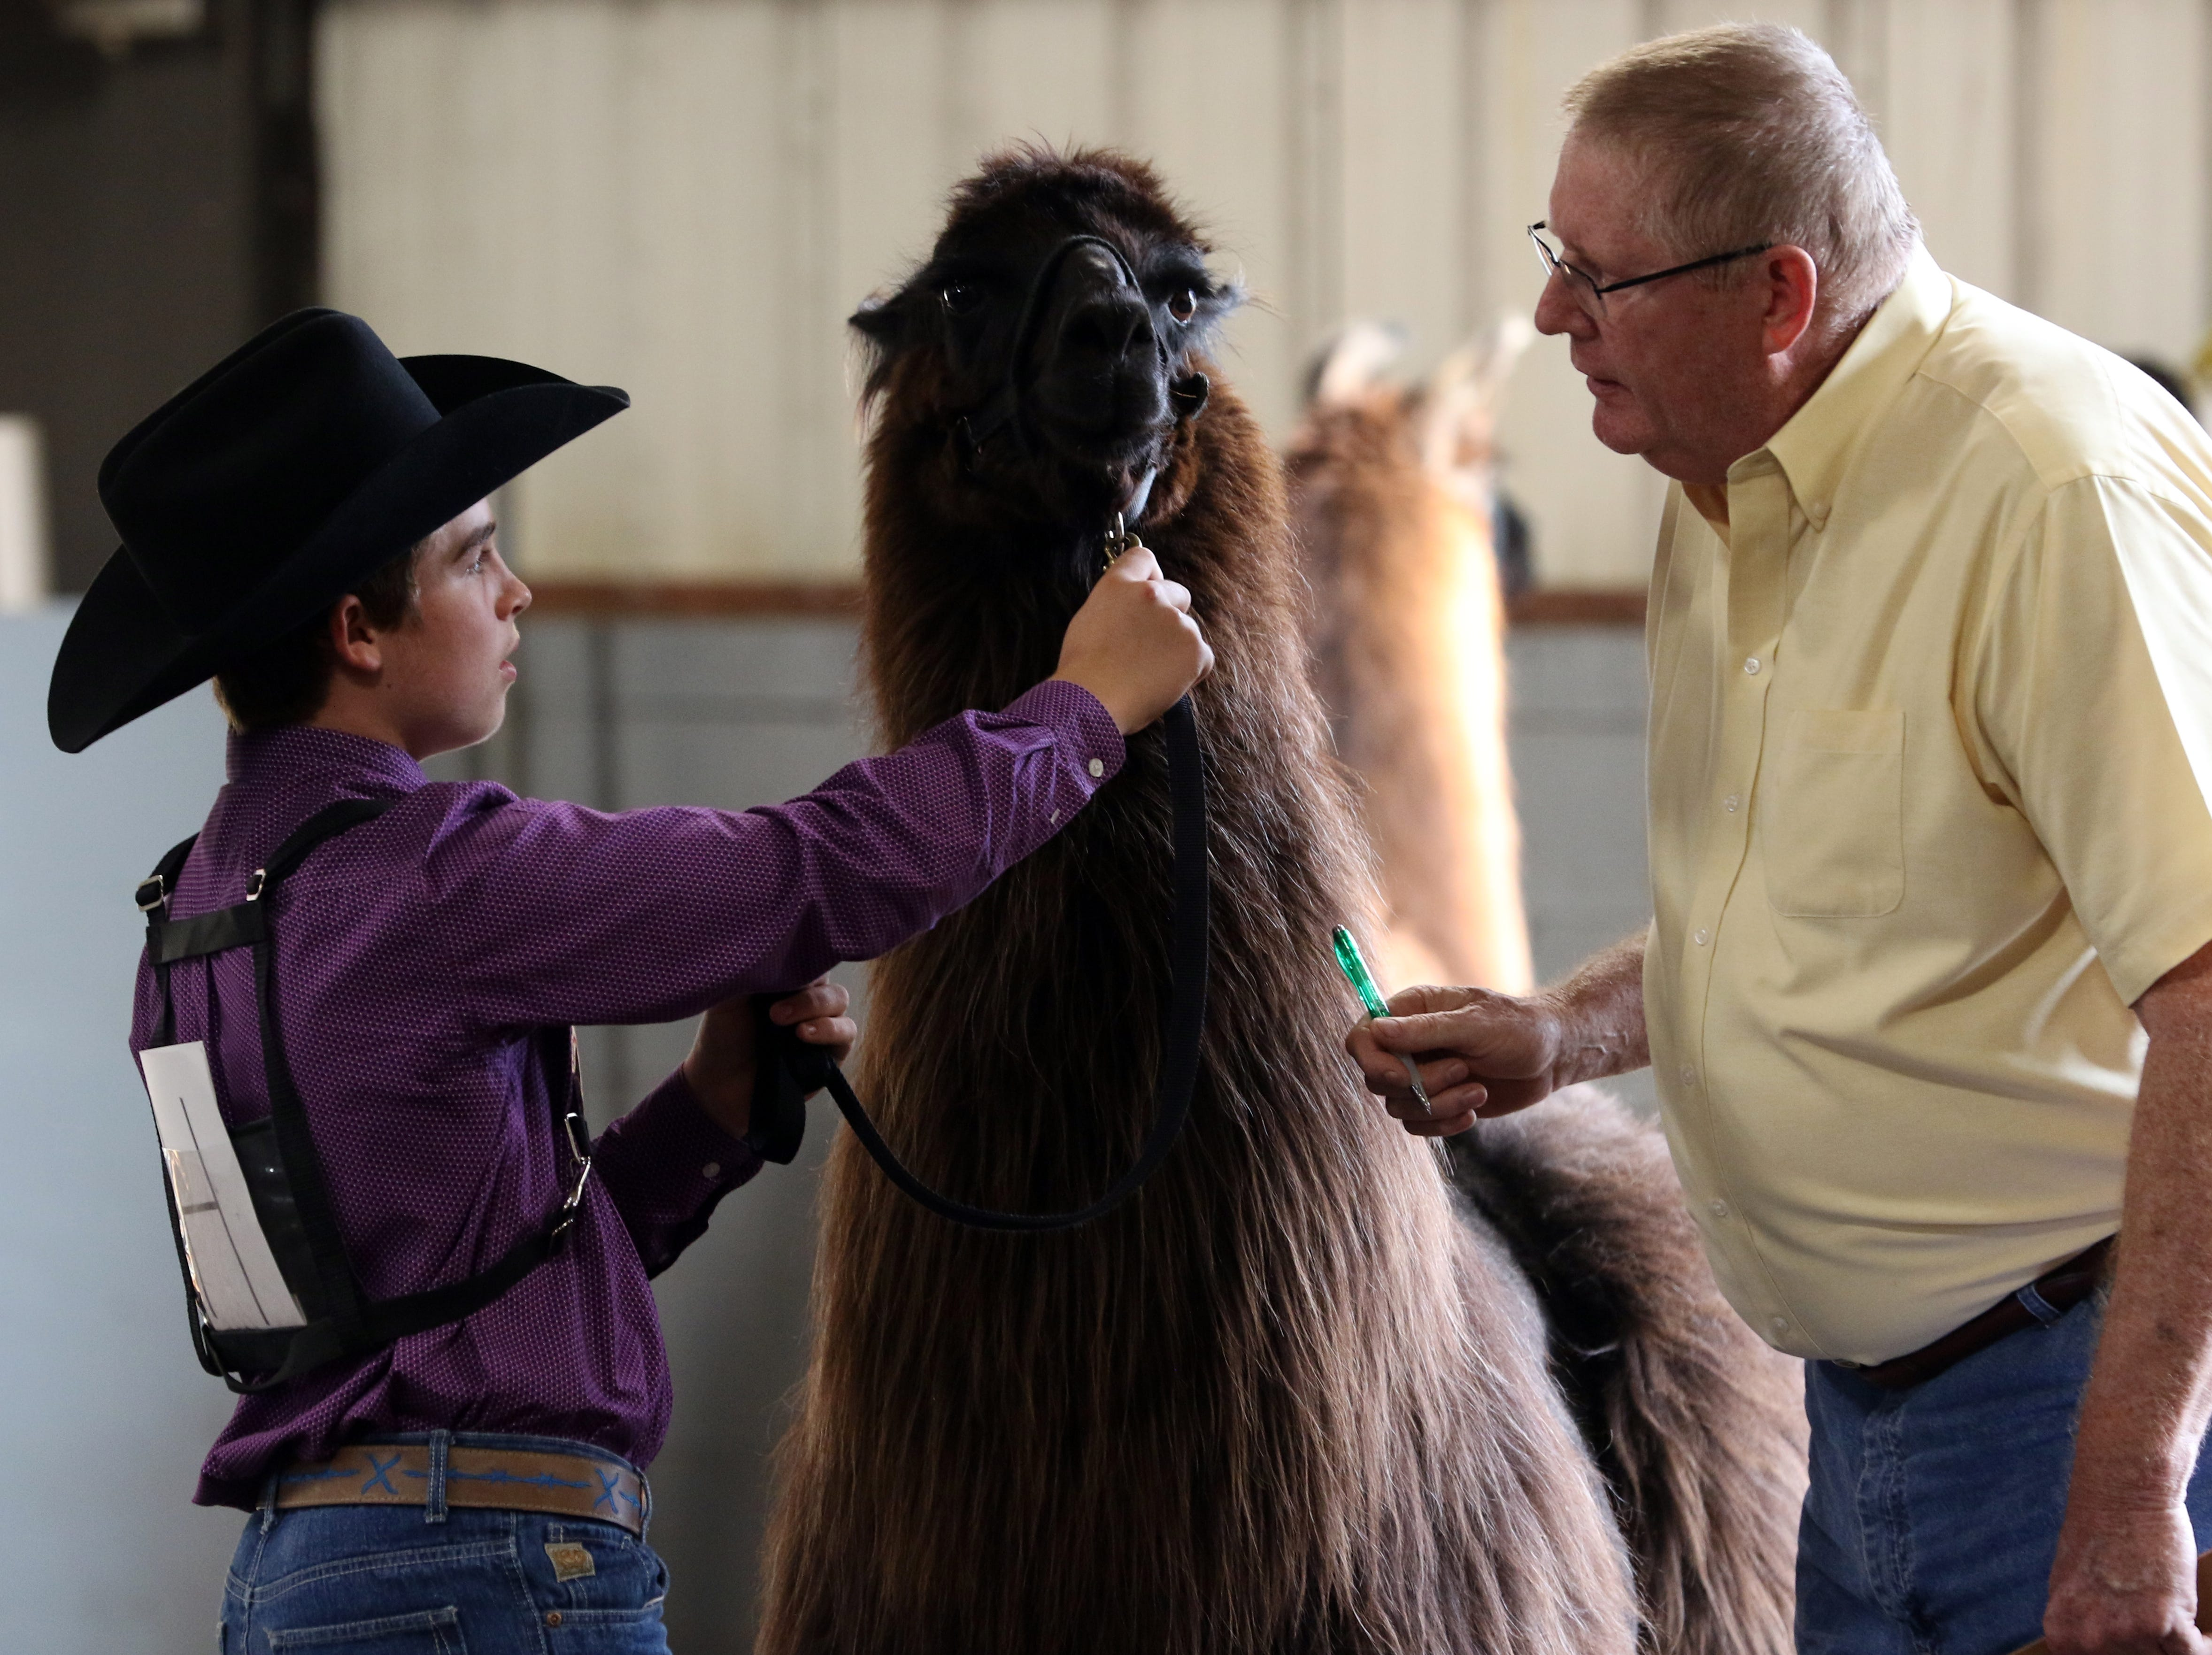 J.D. Herron shows a llama during the Showman of Showmen at the Coshocton County Fair on Wednesday.